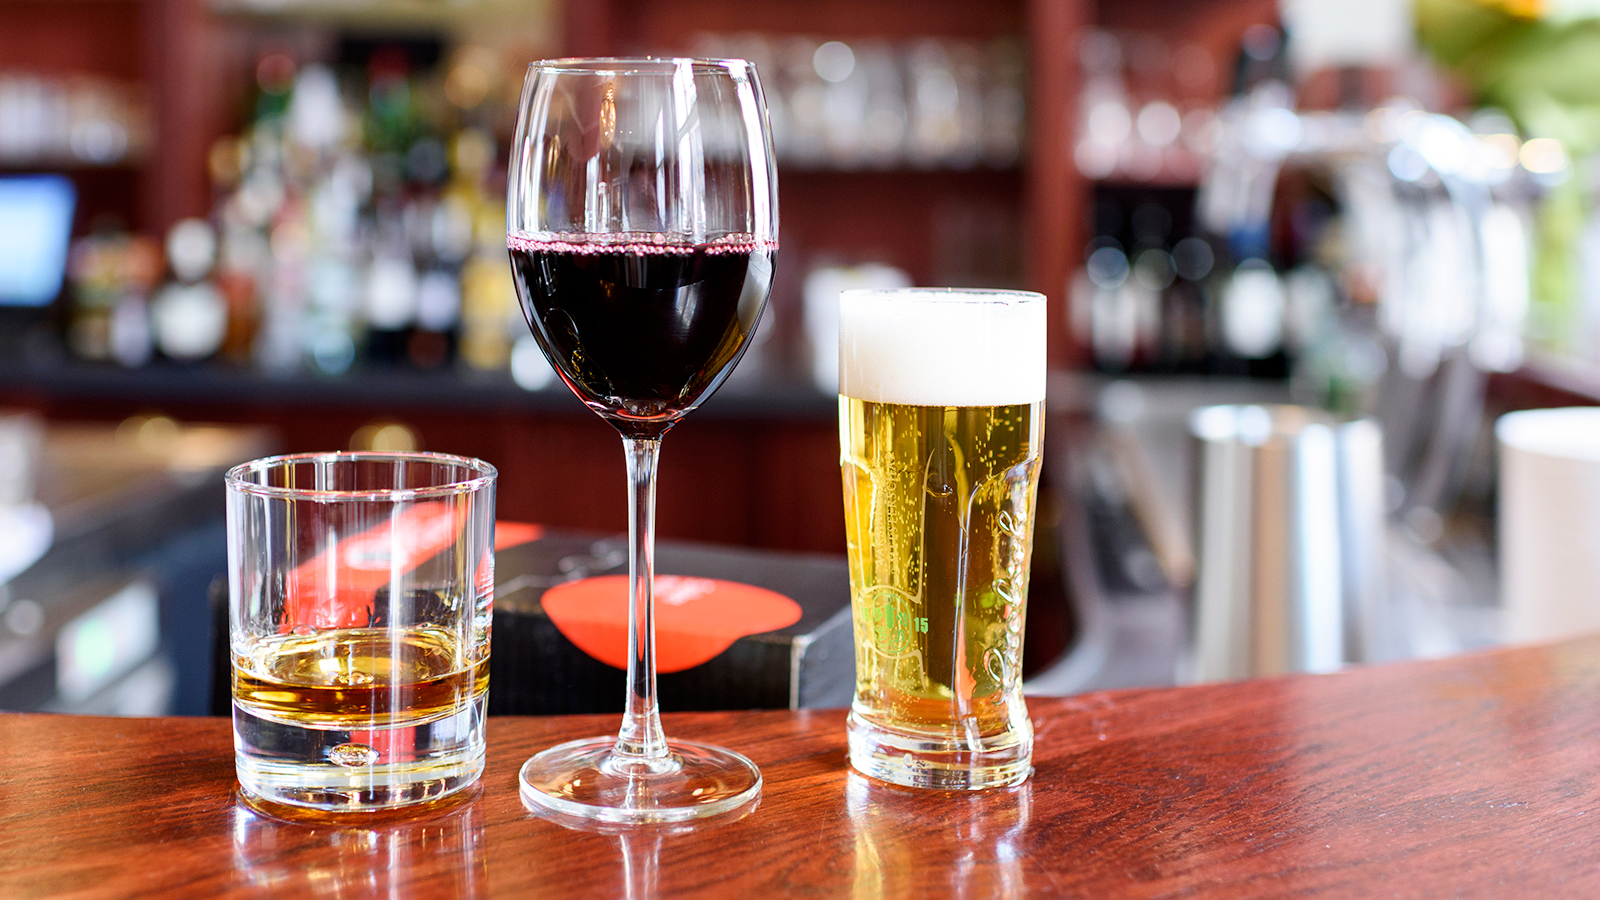 Discussion on this topic: Moderate Drinking And Your Cancer Risk, moderate-drinking-and-your-cancer-risk/